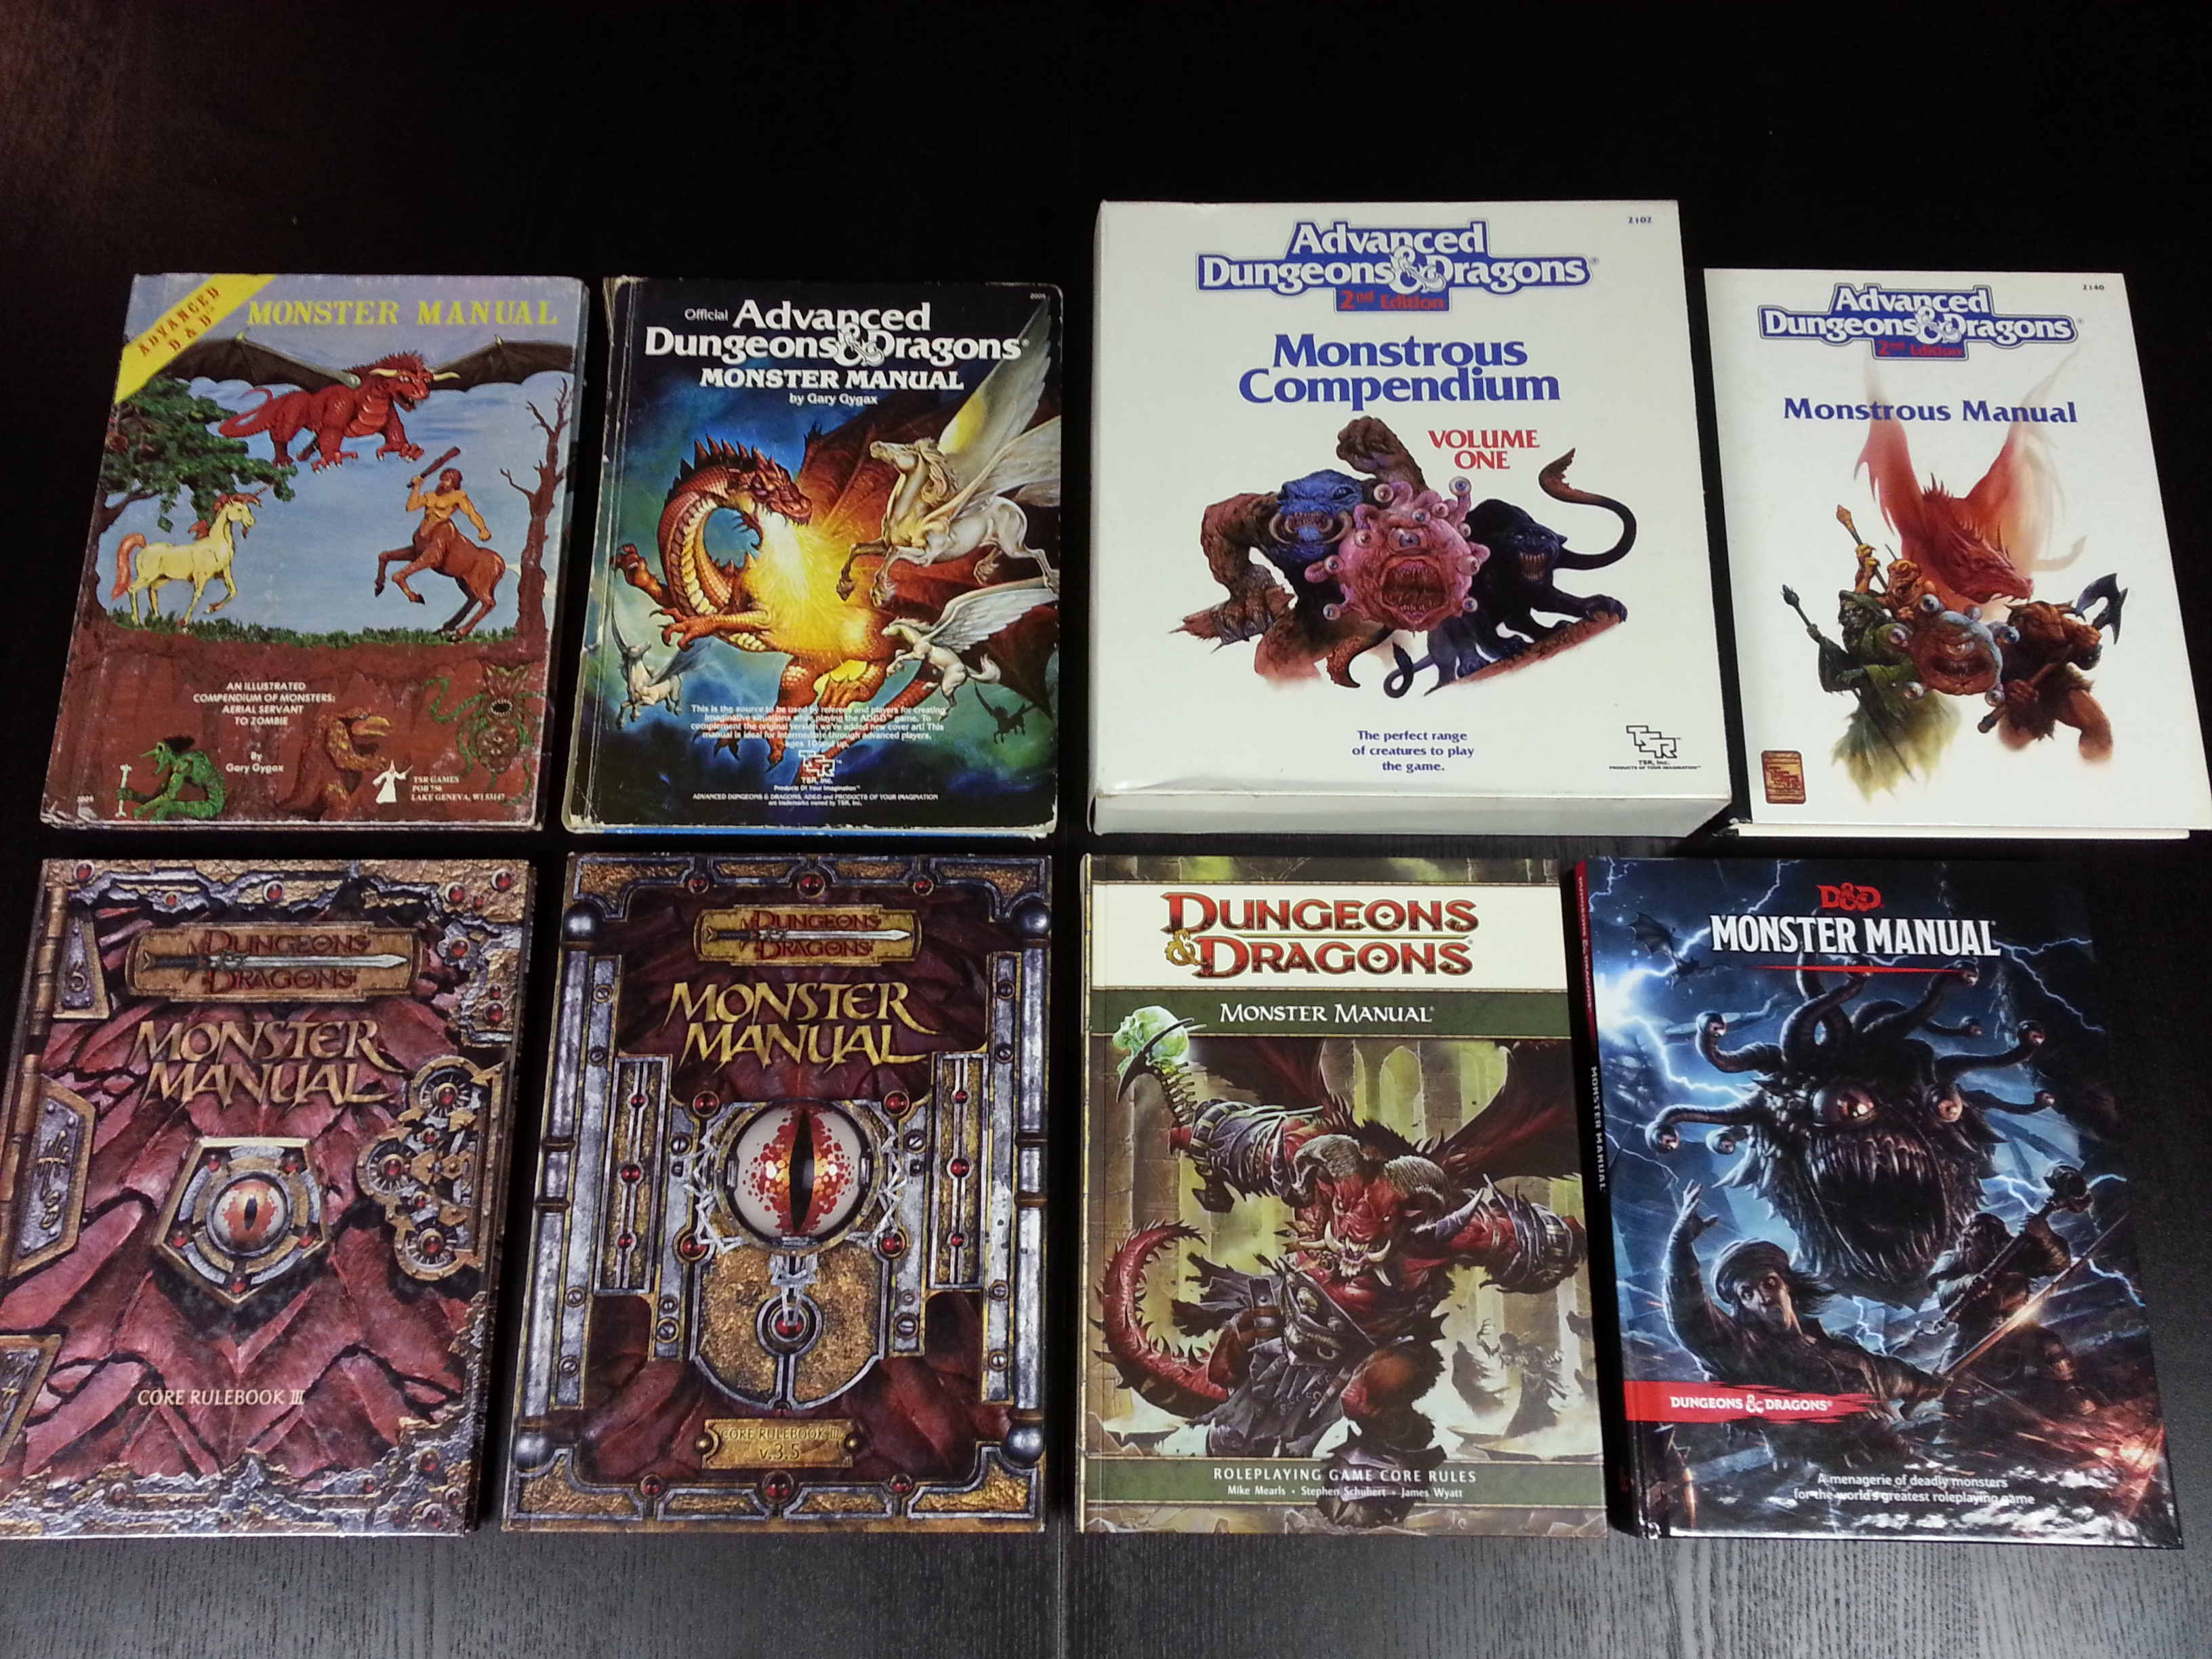 Good idea lists of fantasy creatures, items, and spells for cards for game  | BoardGameGeek | BoardGameGeek